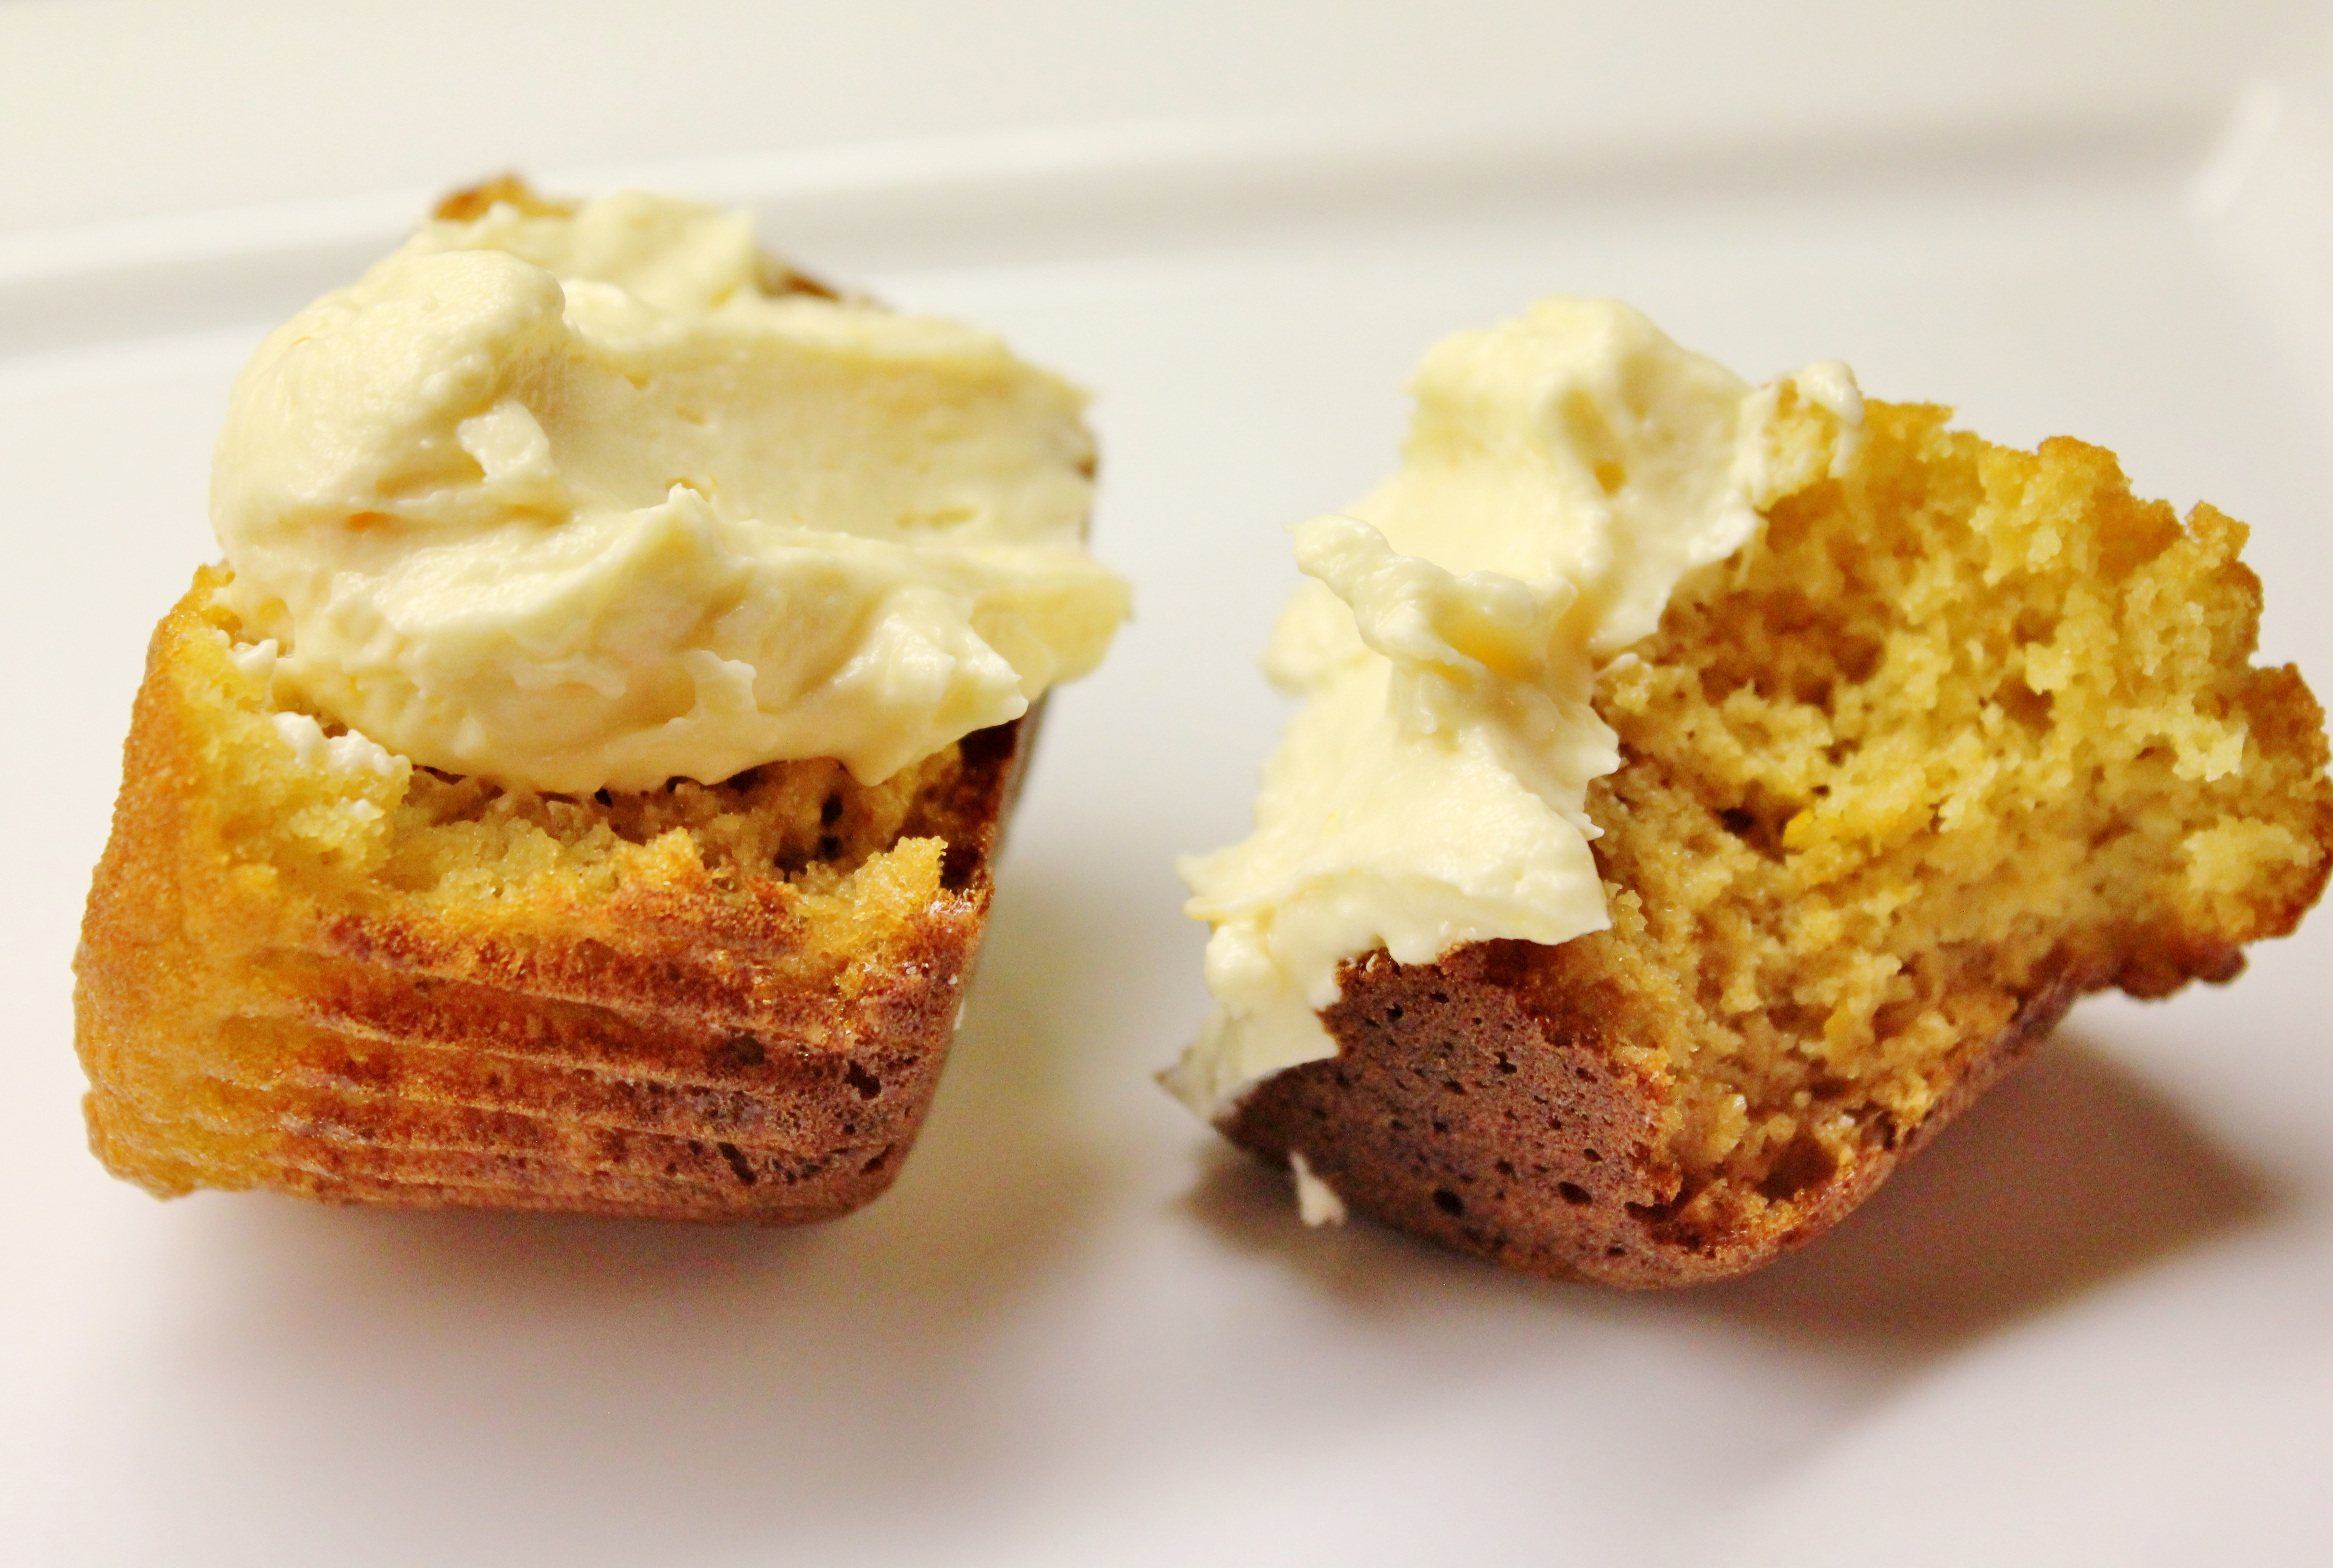 Orange Juice Muffins with Orange Honey Cream (gluten/grain/nut free)